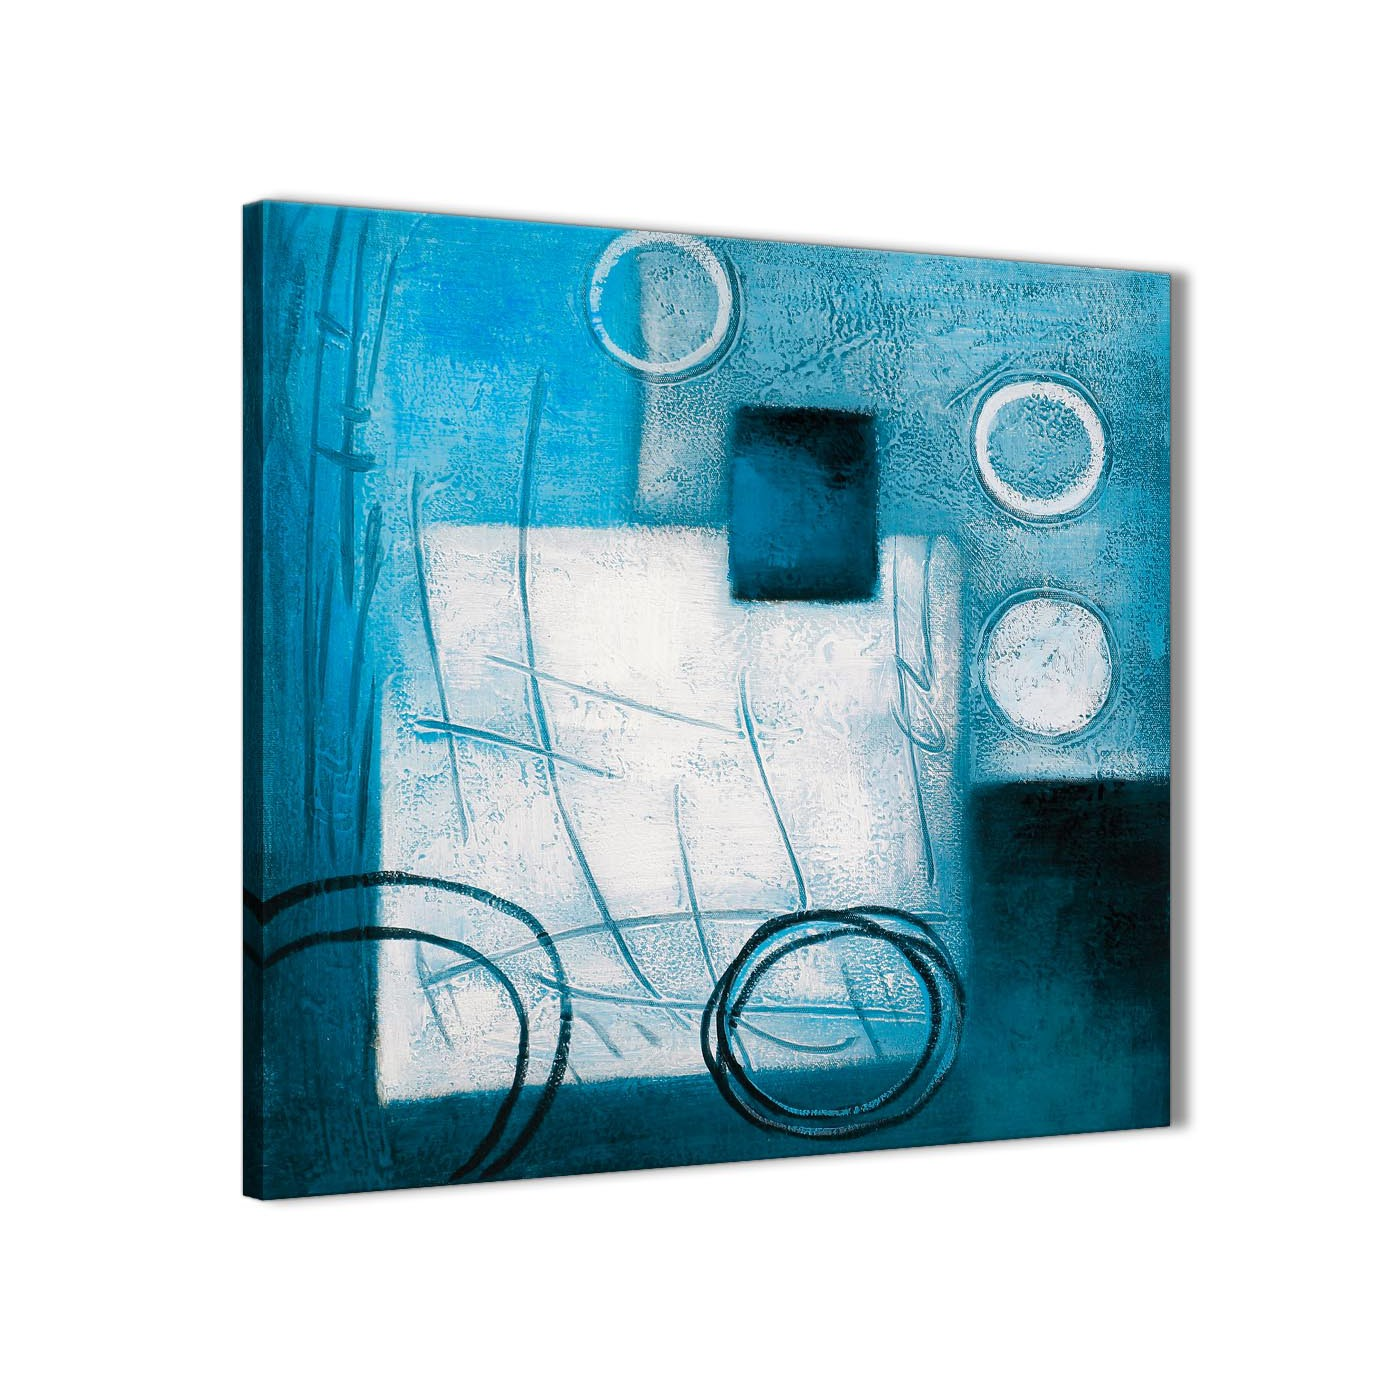 Framed teal white painting hallway canvas wall art decor abstract 1s432m 64cm square print display gallery item 1